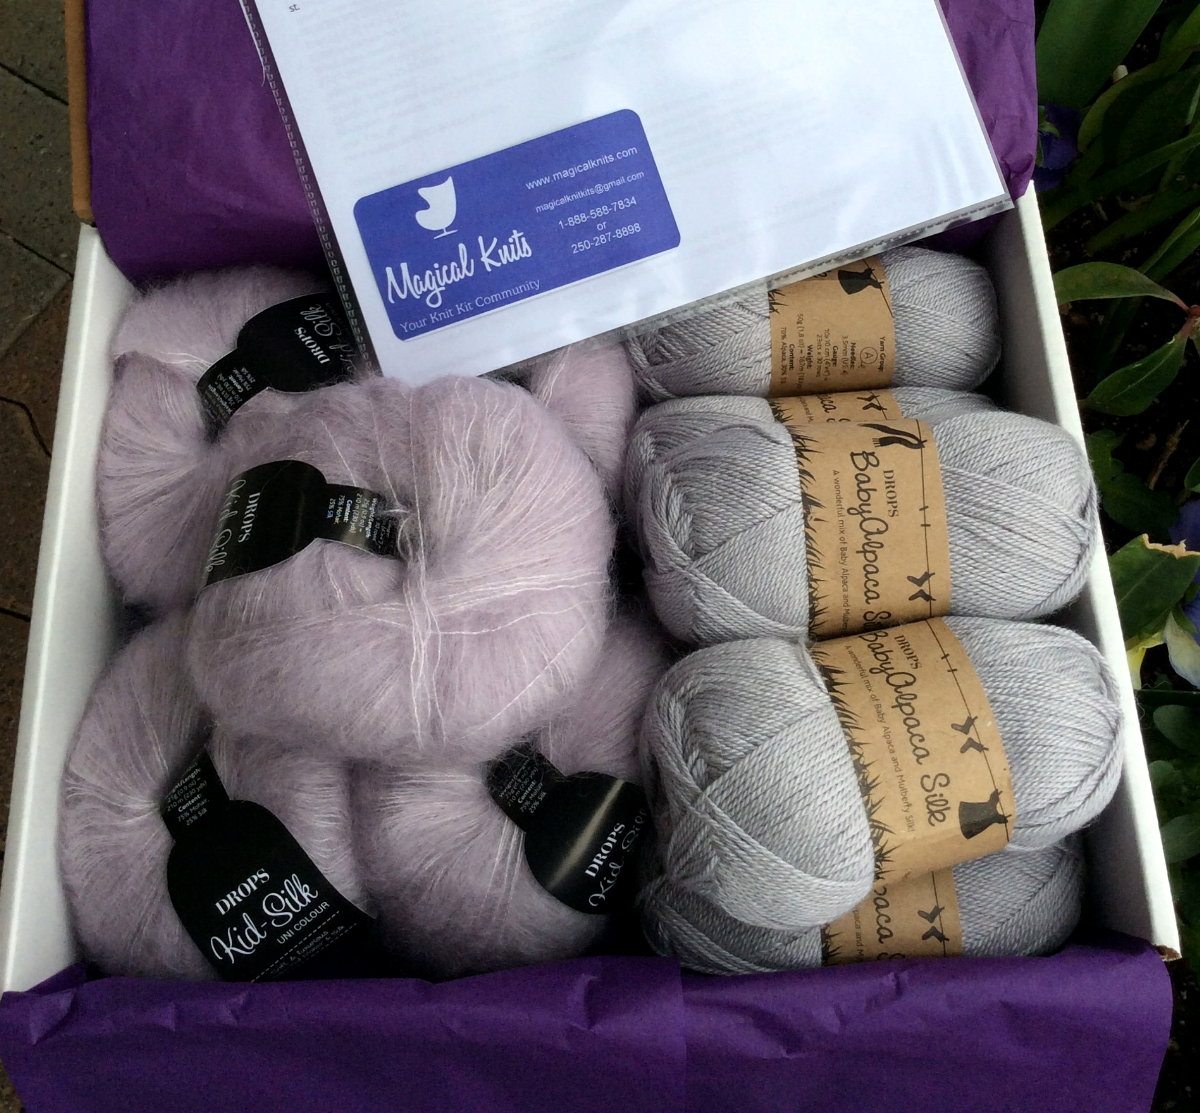 - A Magical Knit Kit consists of a hand picked knitting pattern paired with a matching selection of quality yarns, sufficient for the project. For peace of mind you may add knitting needles and notions as suggested. All nicely wrapped and ready to start your project - at home, on the beach, on the boat, ...